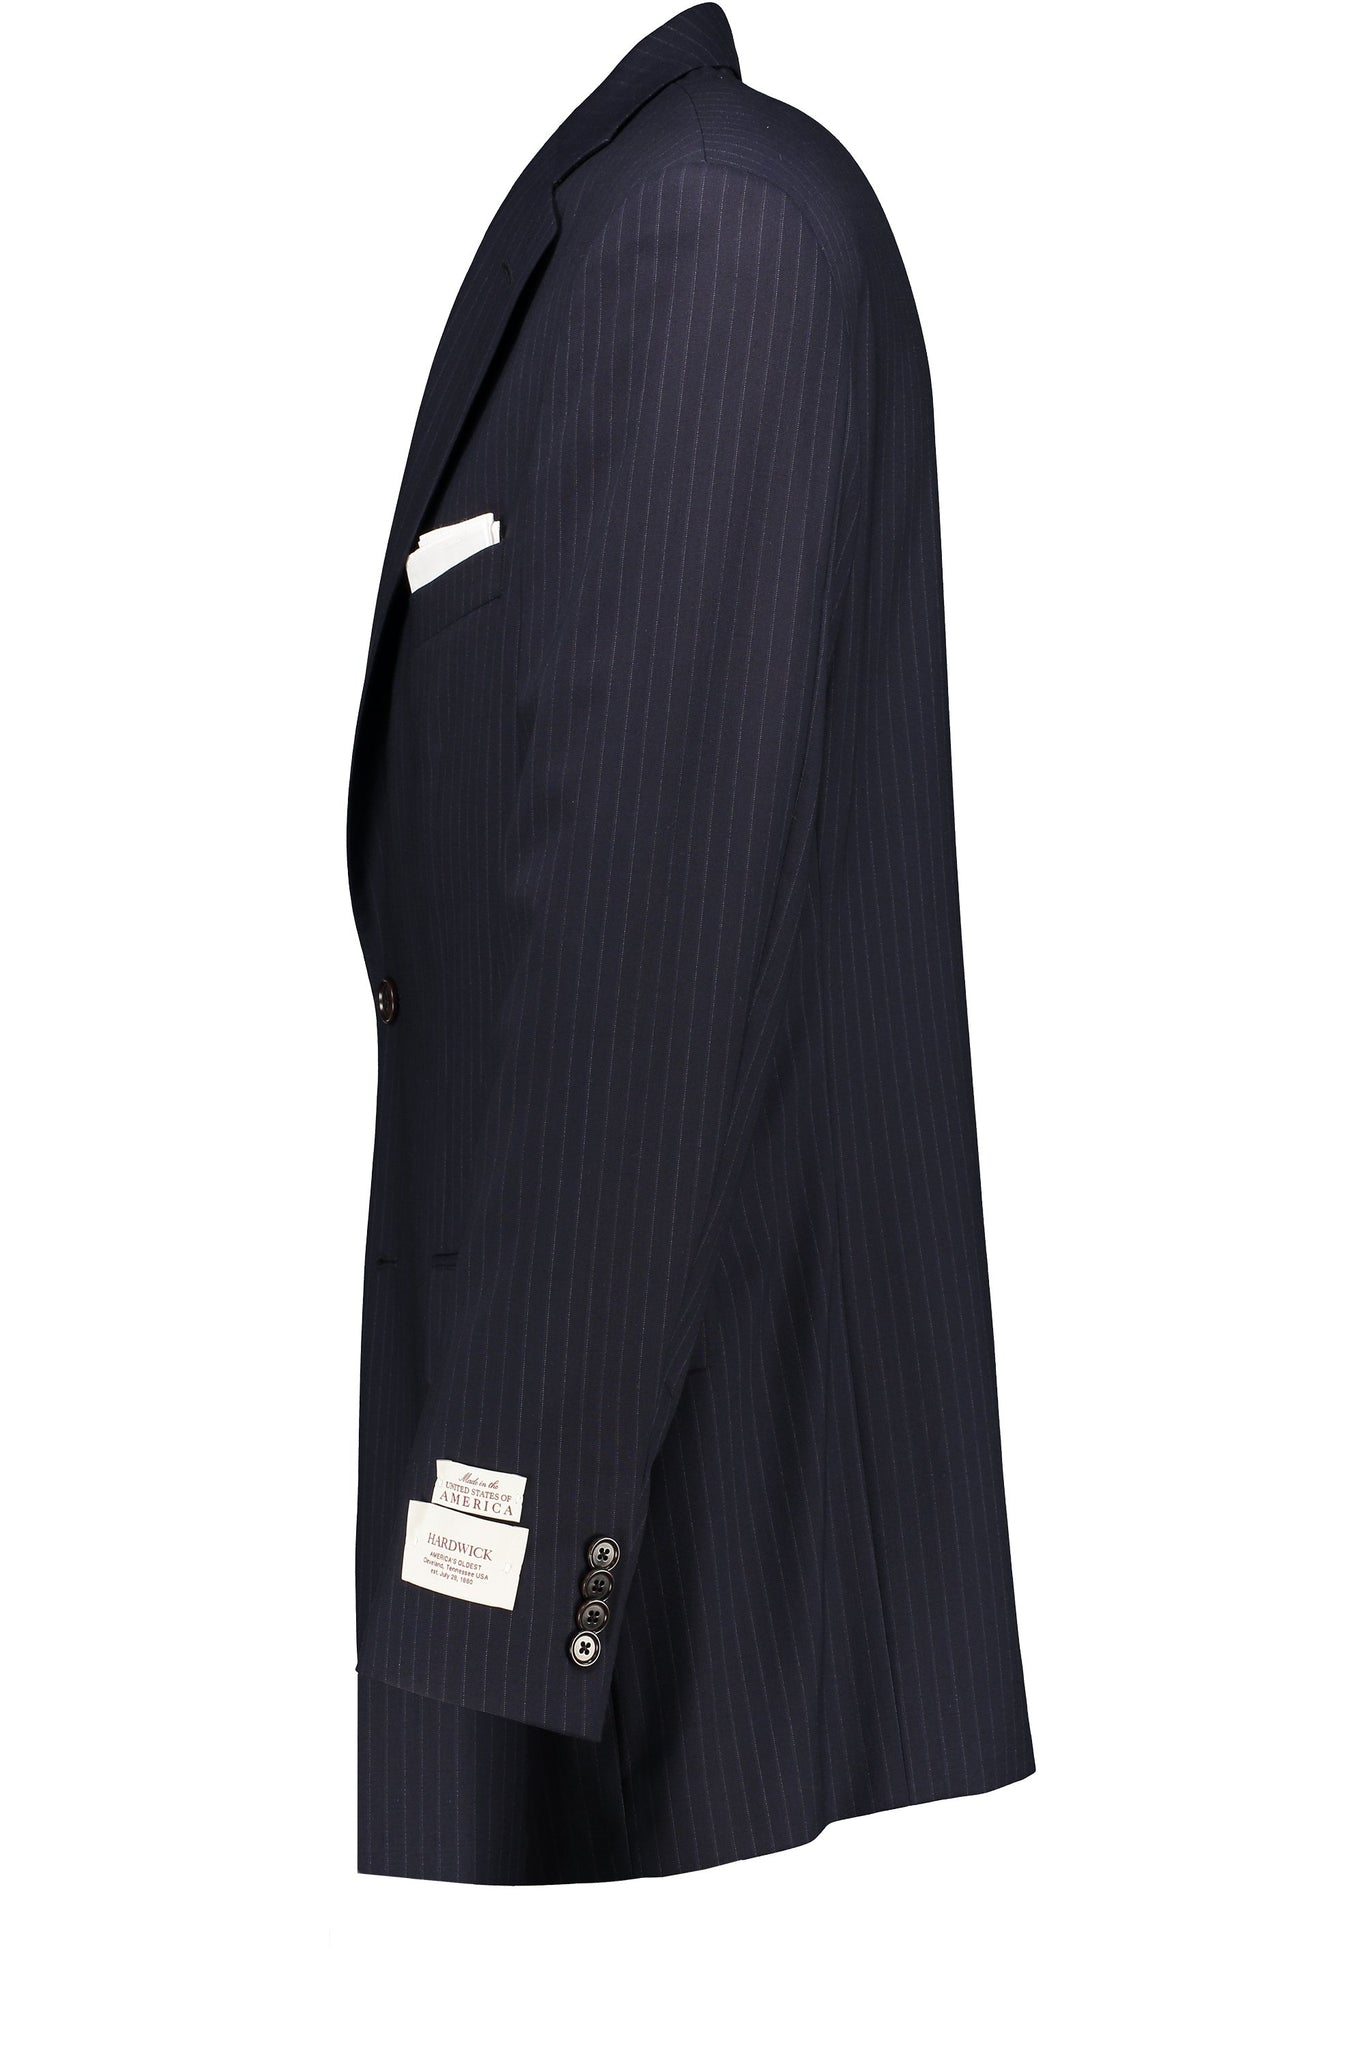 Classic Fit Navy Pinstripe H-Tech Wool Suit Separate Jacket -  Hardwick.com